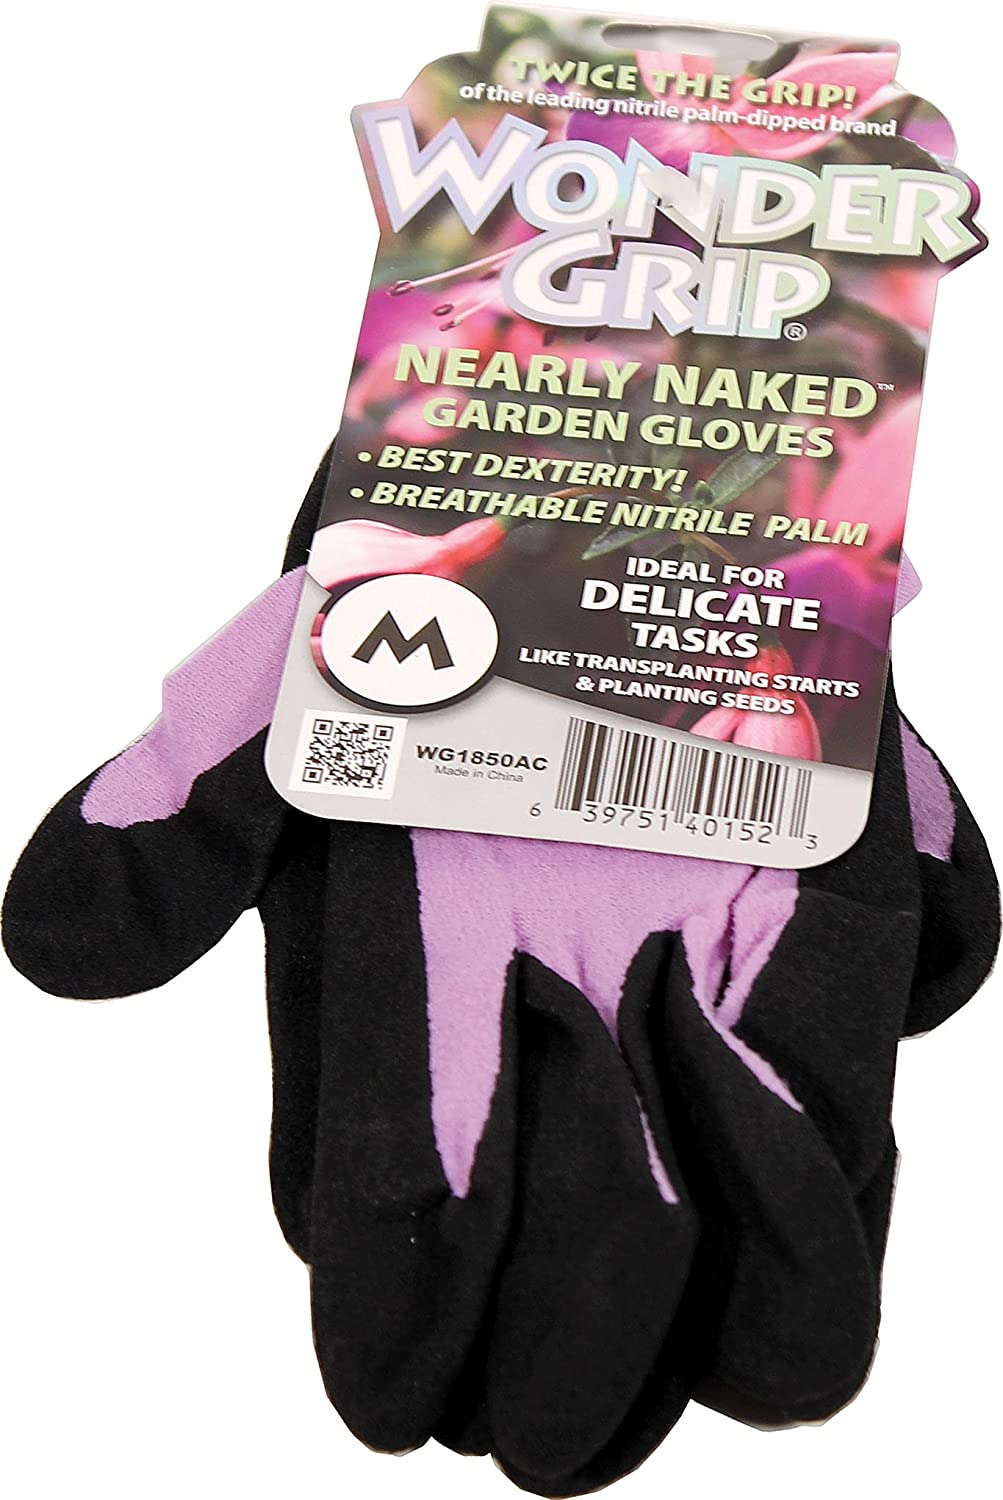 Wonder Grip Nearly Naked Gloves, Medium, Assorted Colors